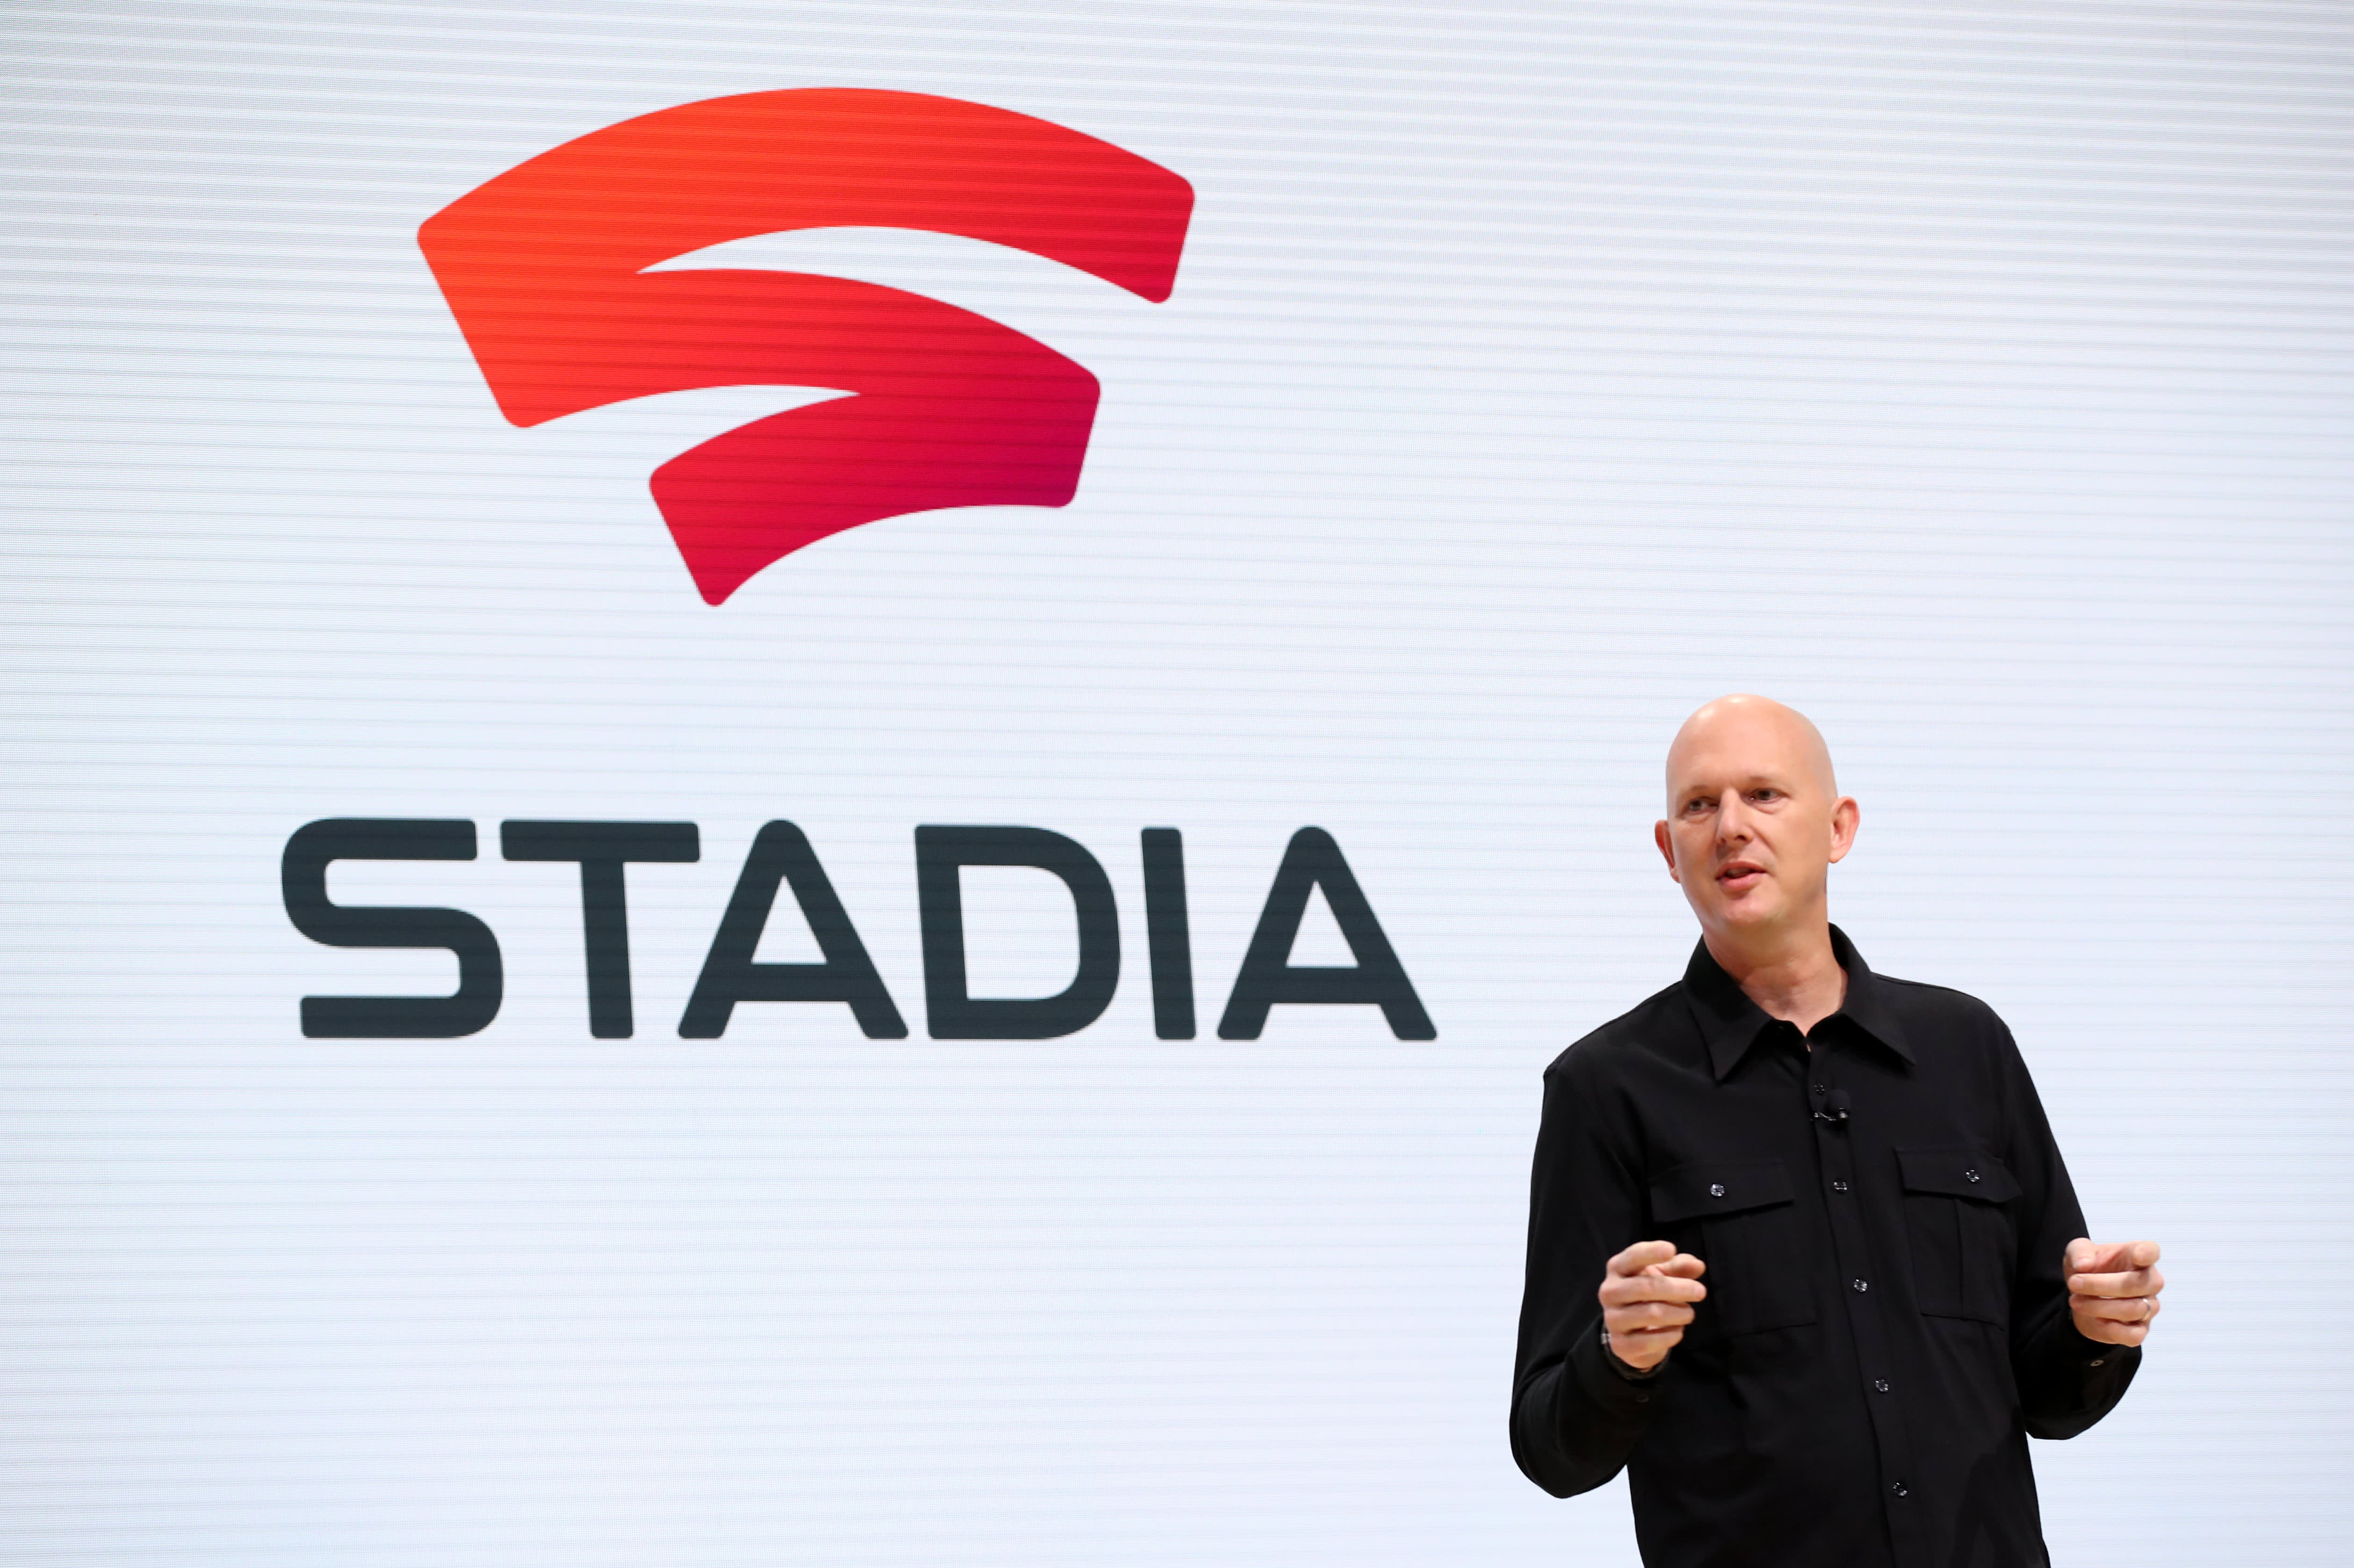 Google announces Stadia, its streaming game platform, in an effort to upend the $140 billion video game industry